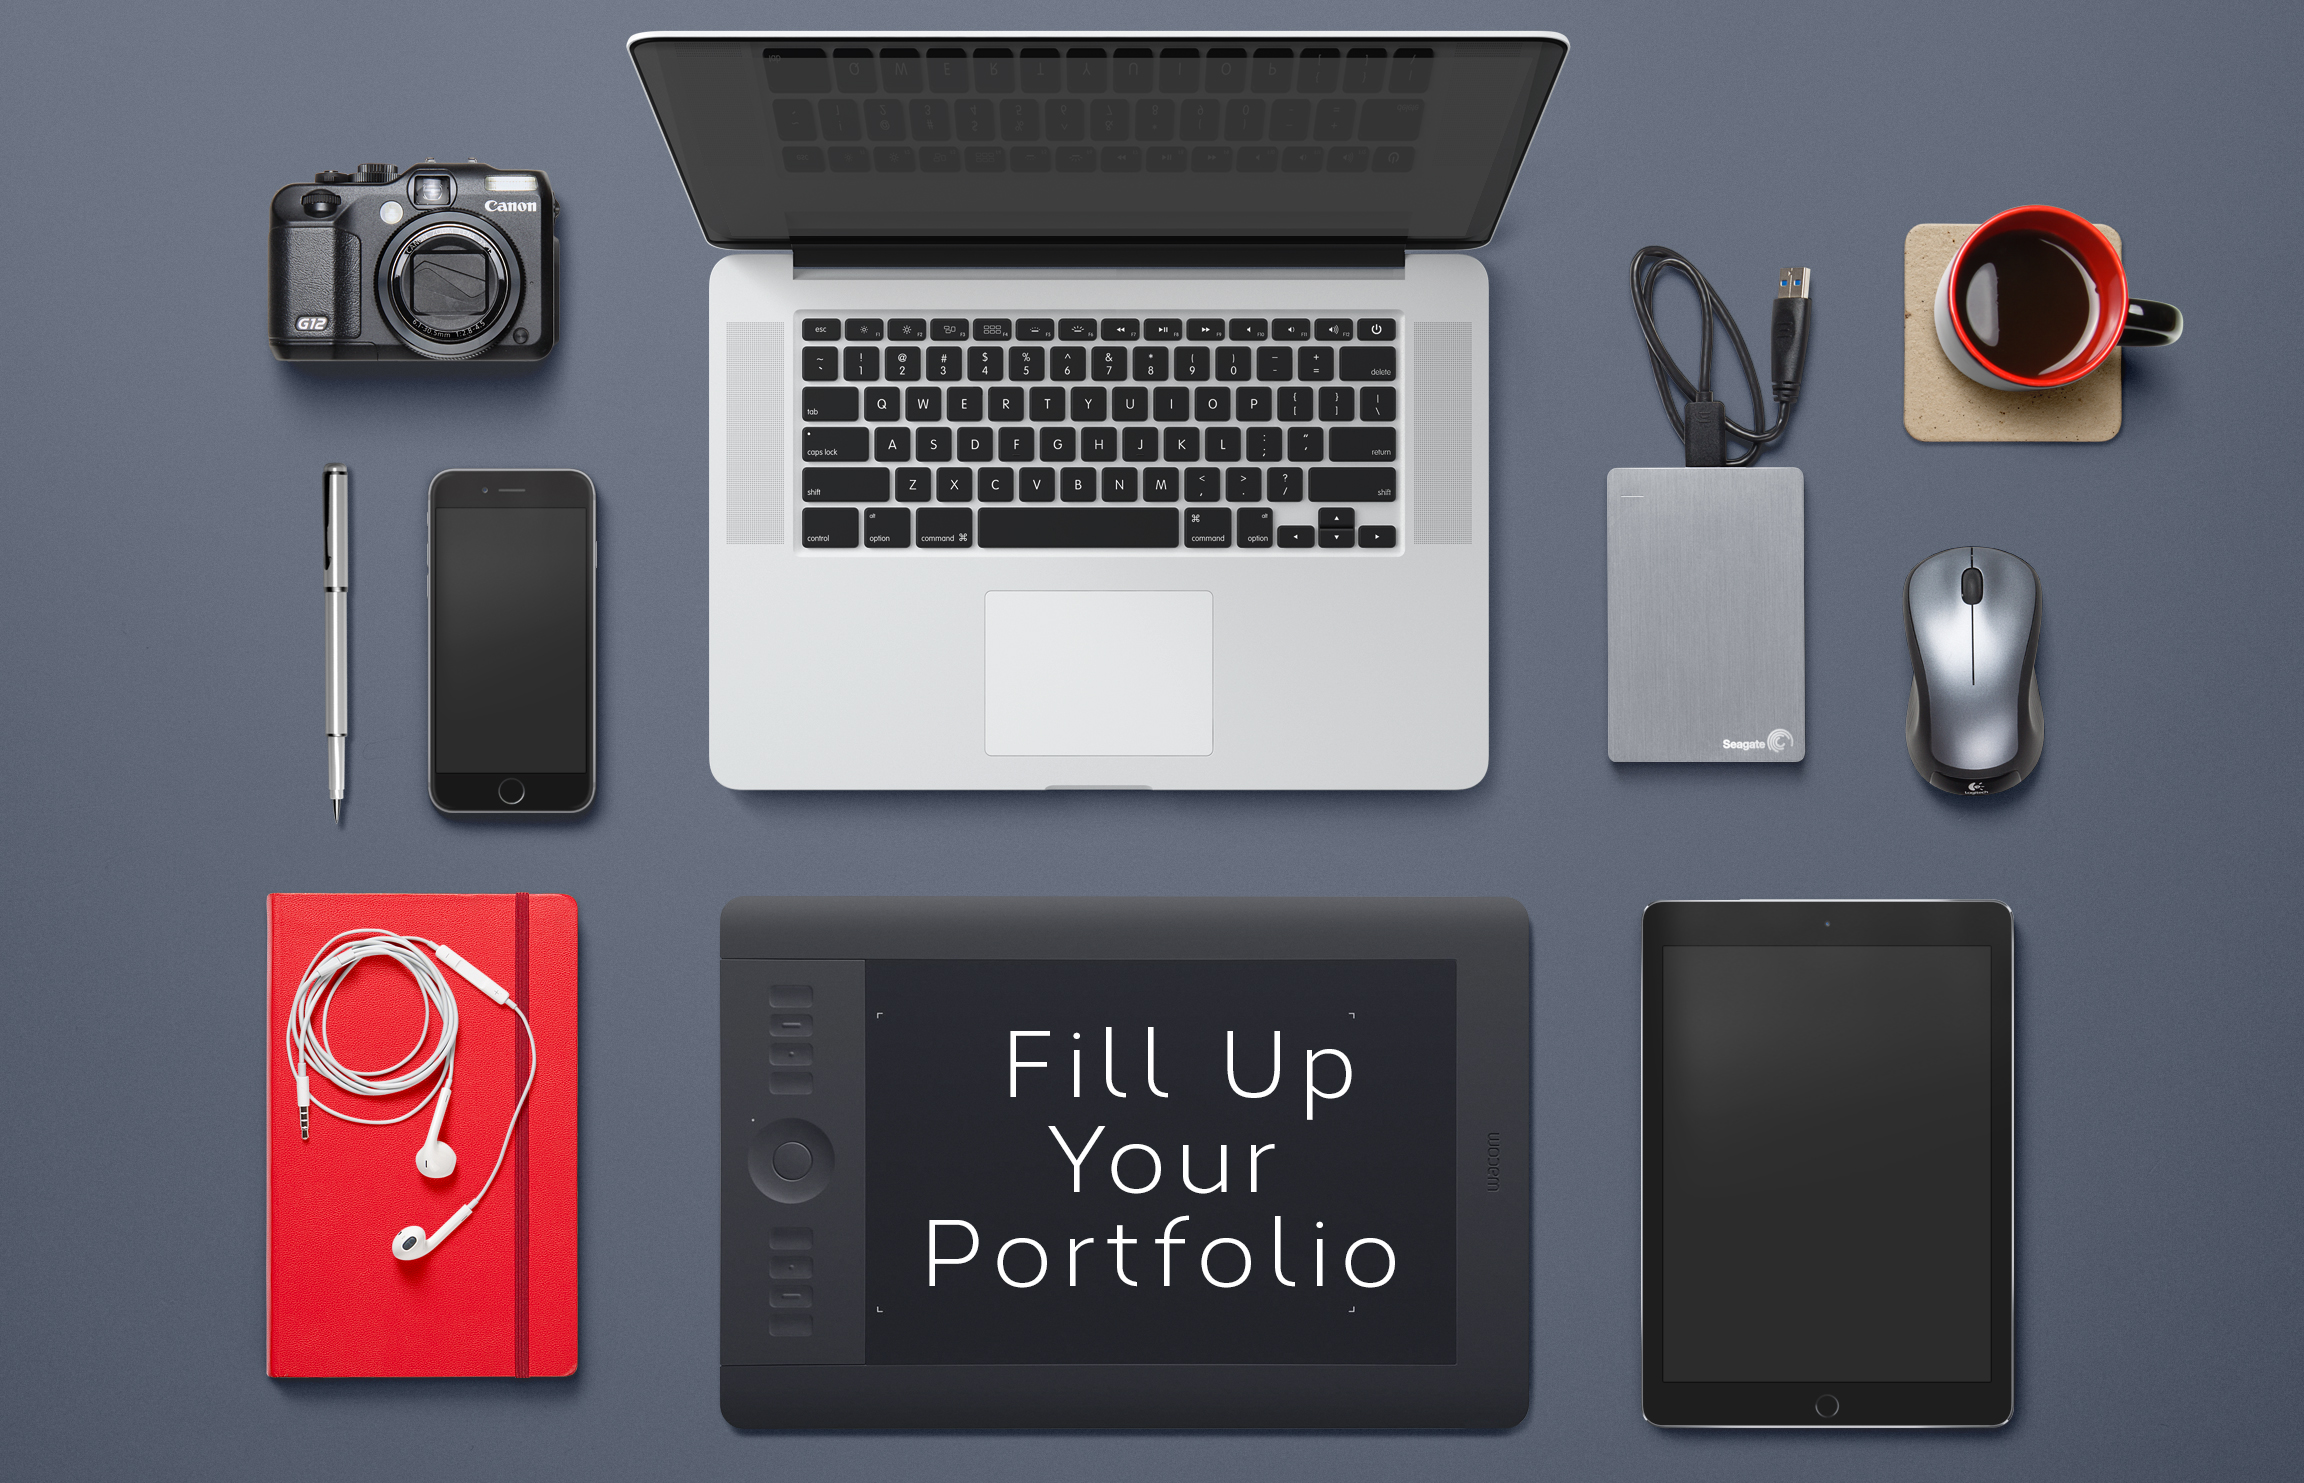 fill up your portfolio - Portfolio Design Ideas